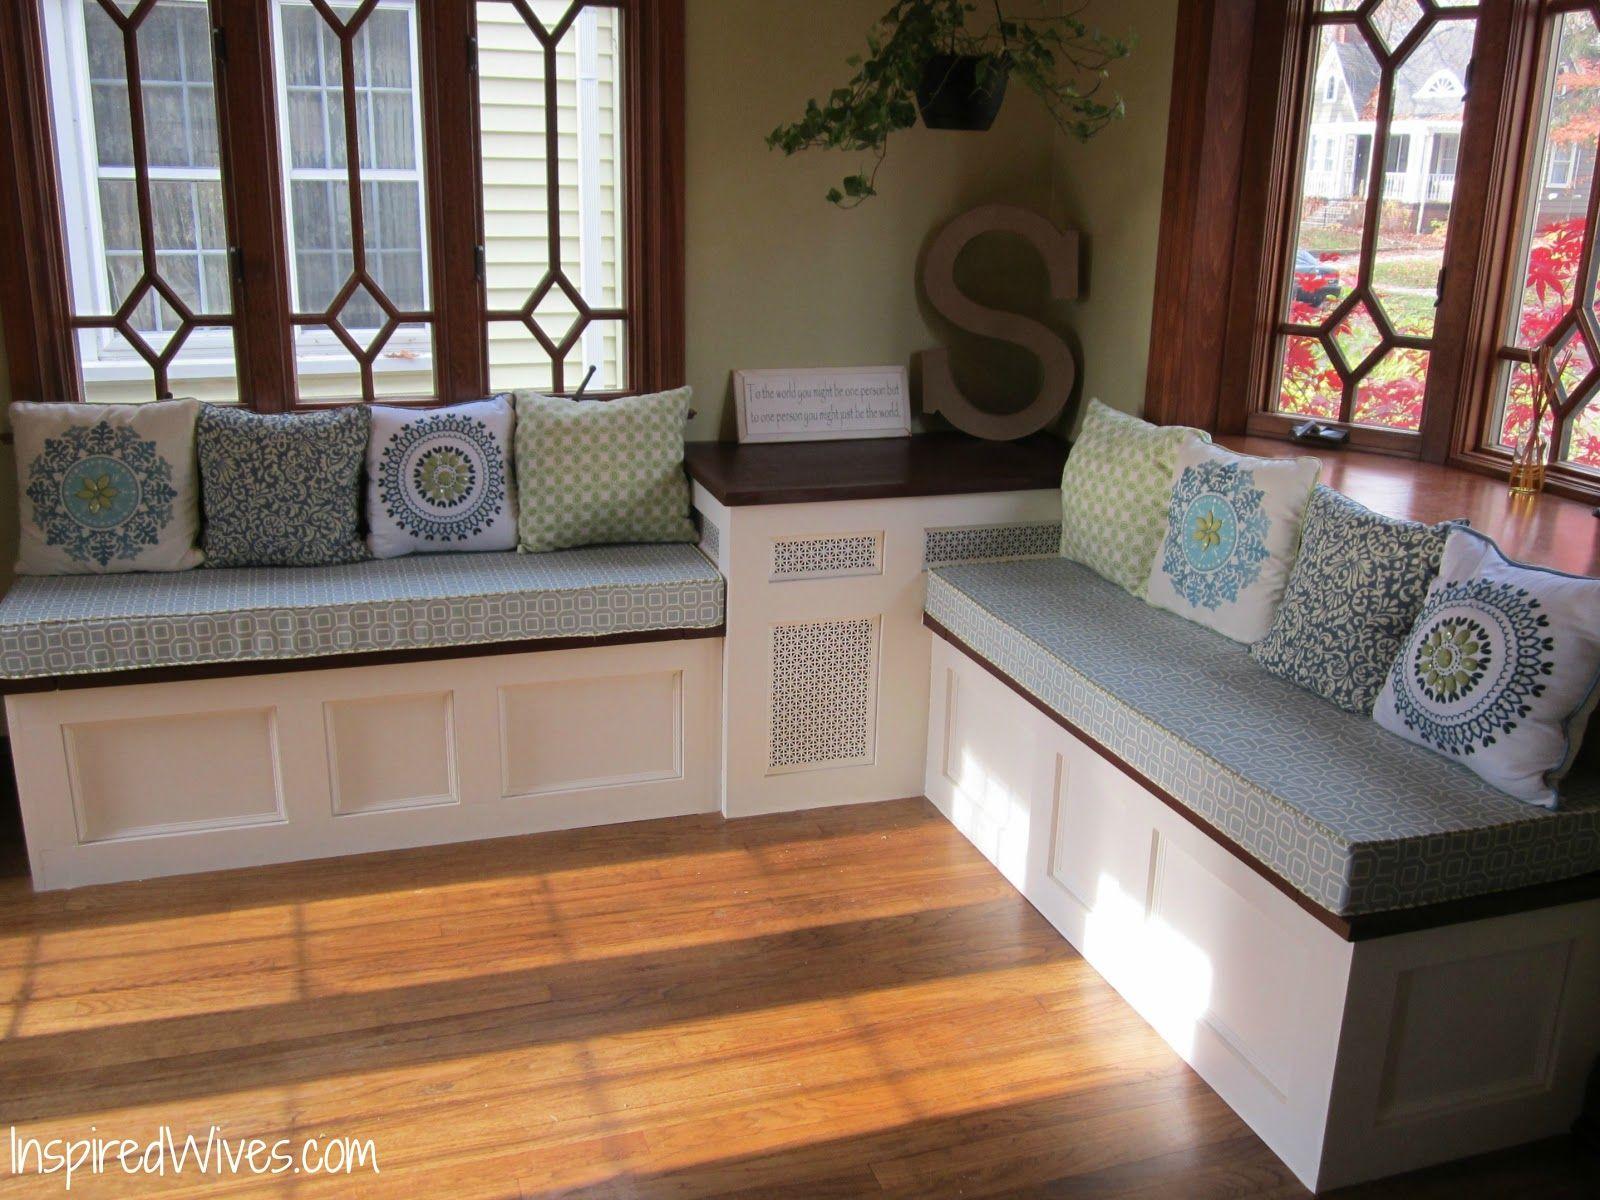 Kitchen Nooks With Storage Benches